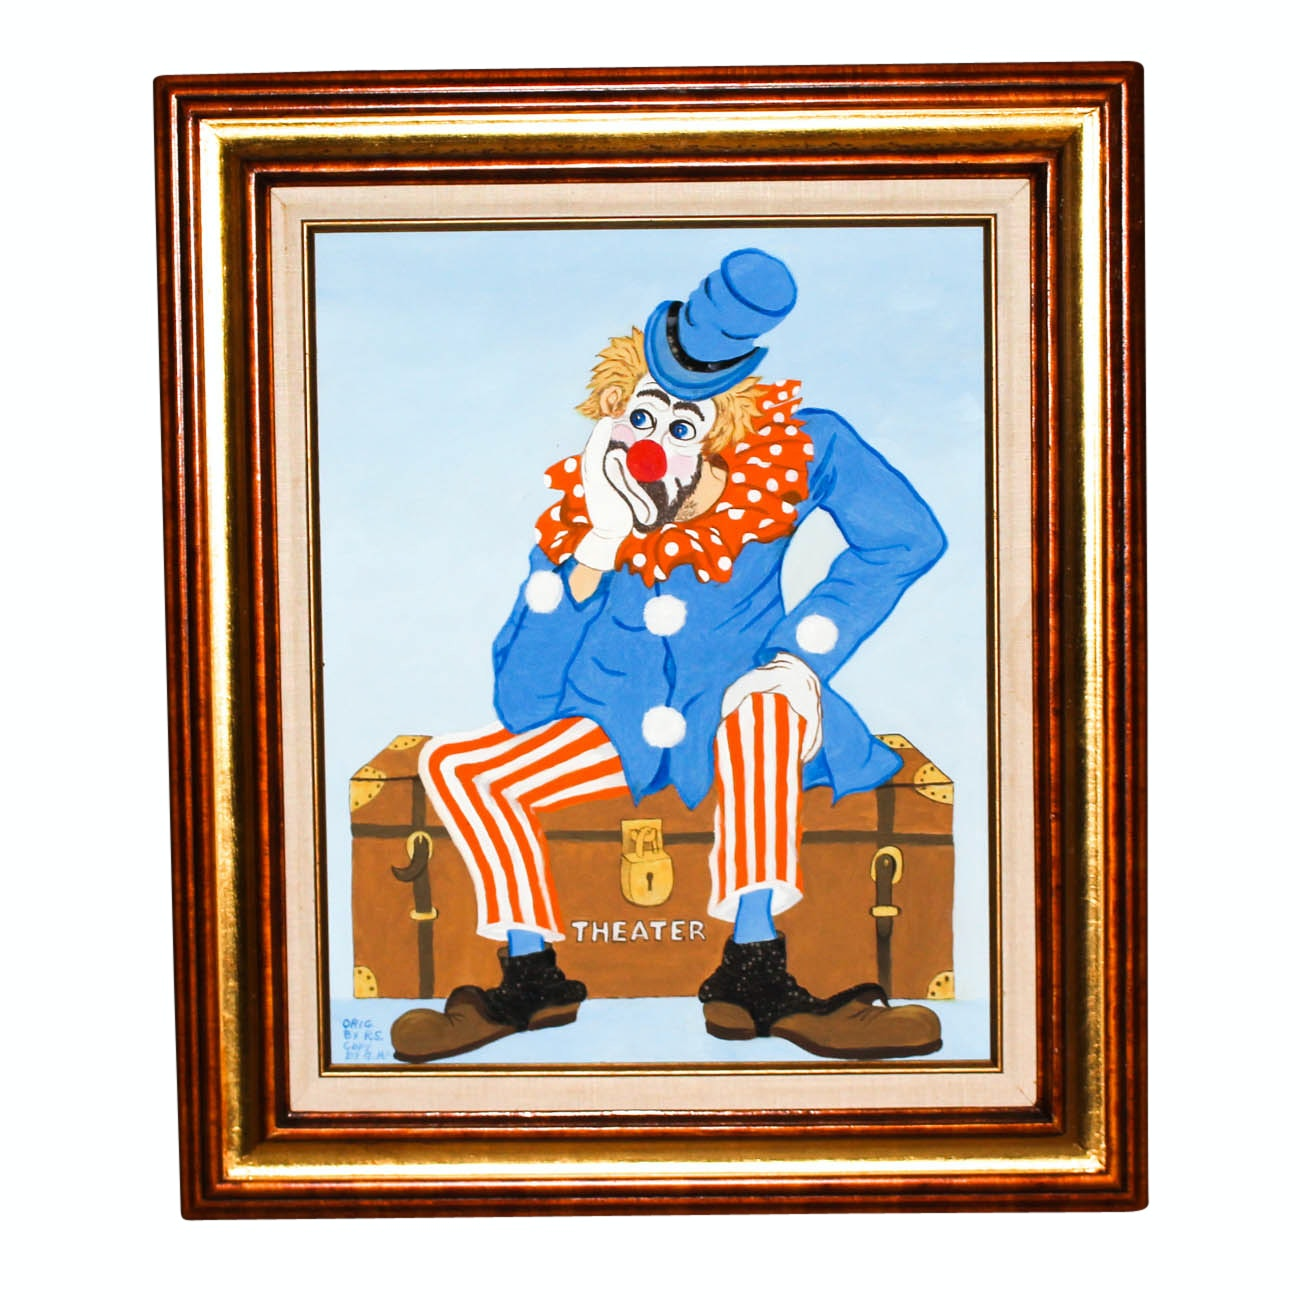 G. McDonough Oil Painting of Theater Clown